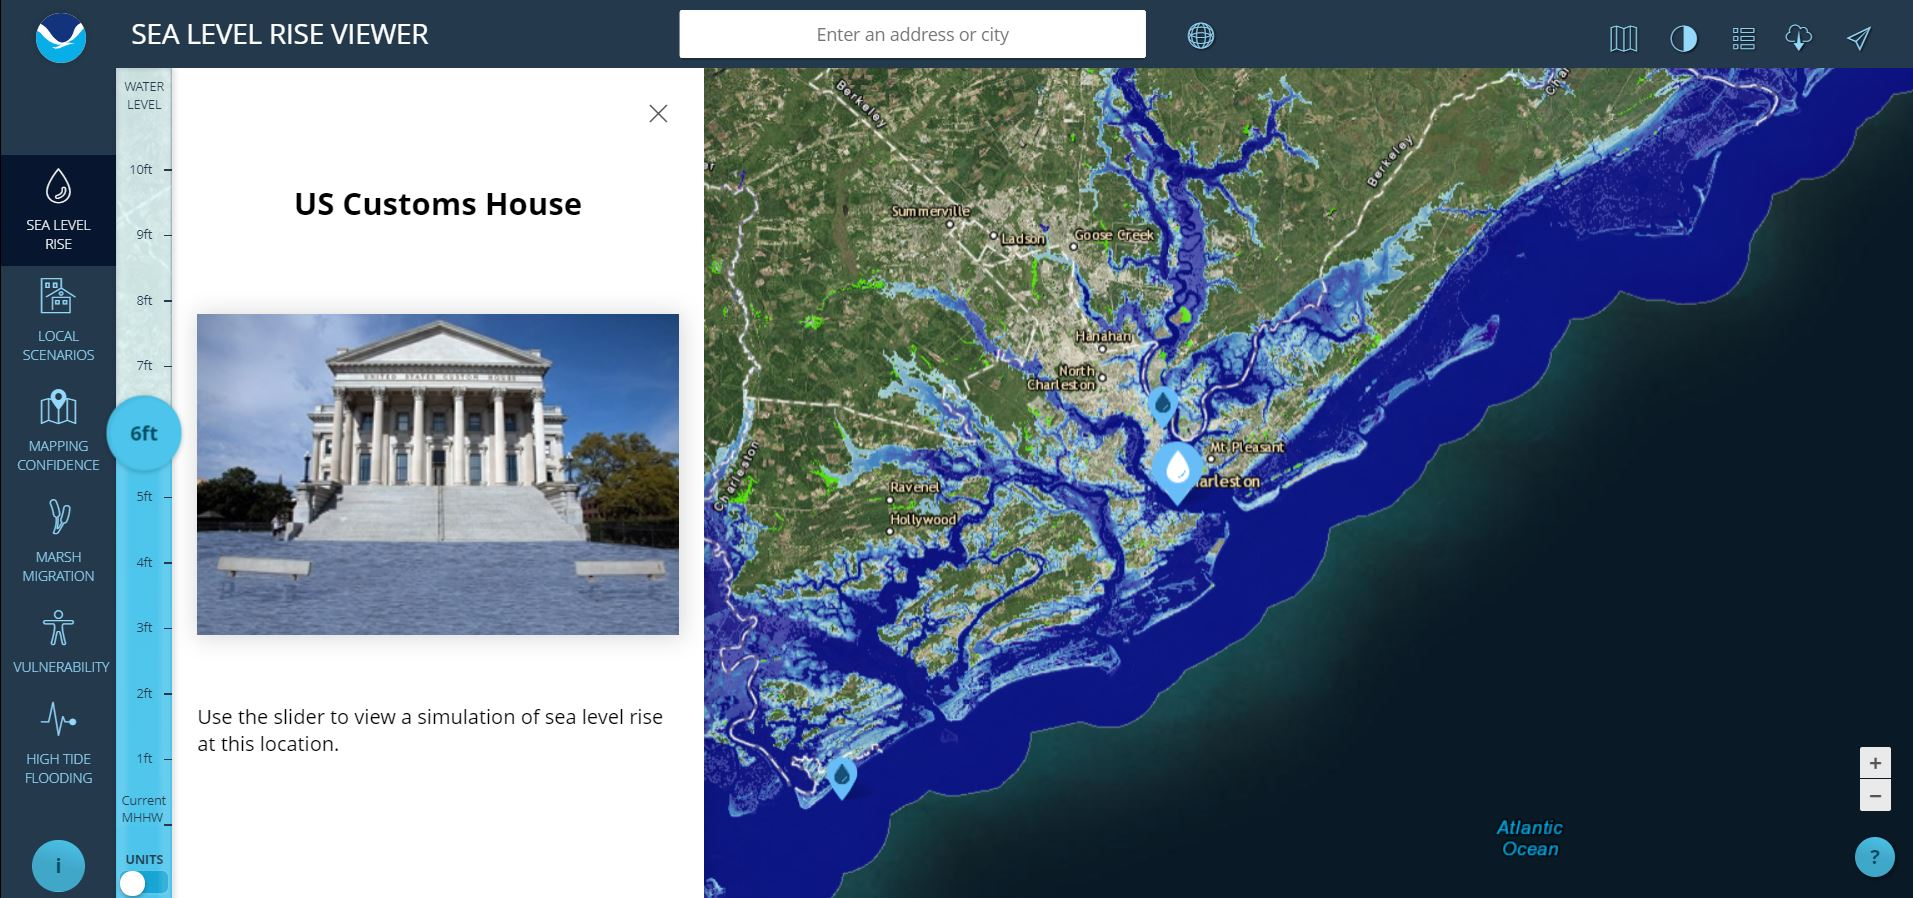 Sea Level Rise Viewer - Projected sea level rise map